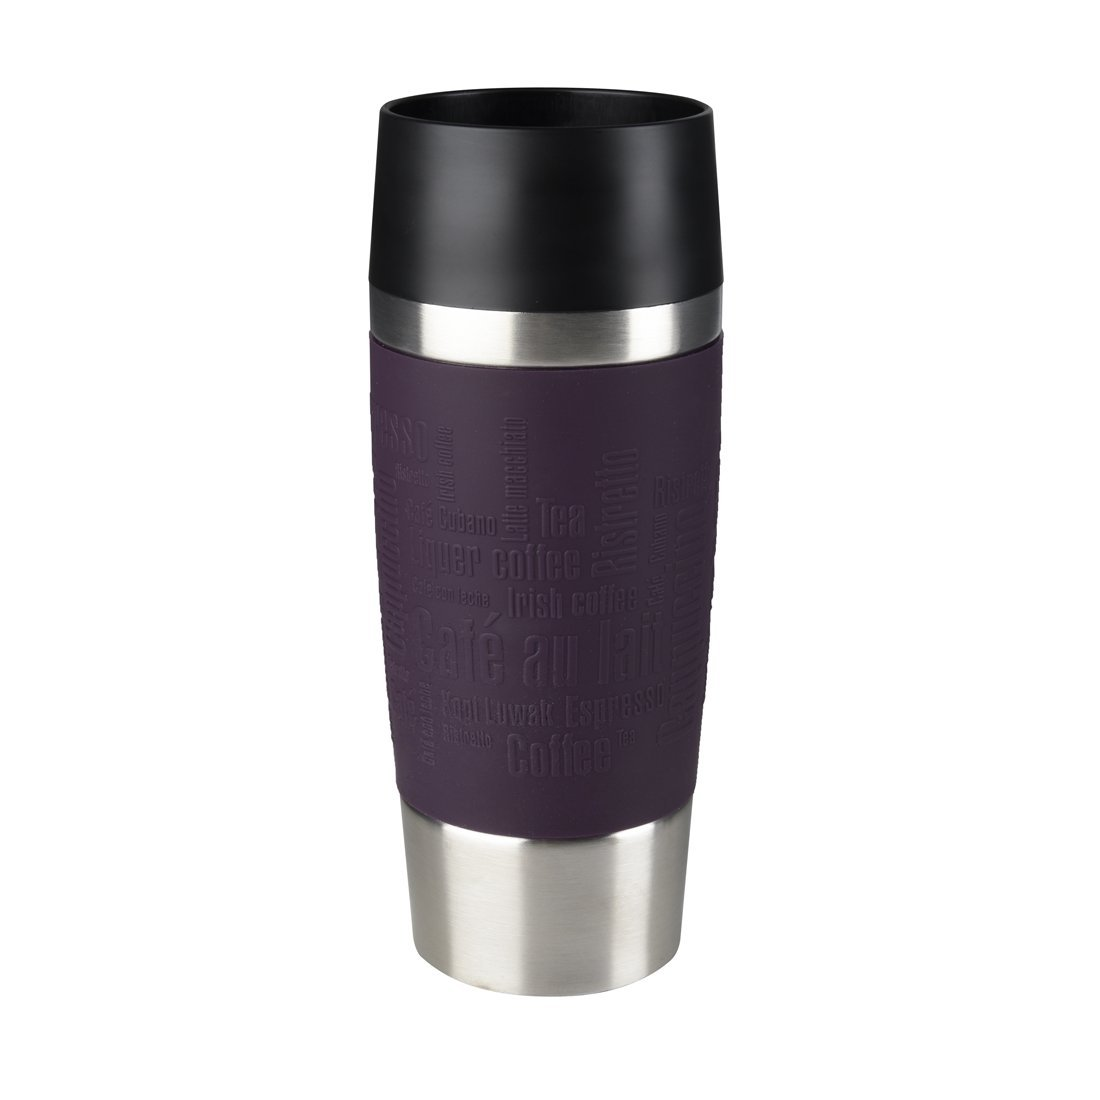 Termohrnek TRAVEL MUG Quick press 360 ml ostružinový - Emsa